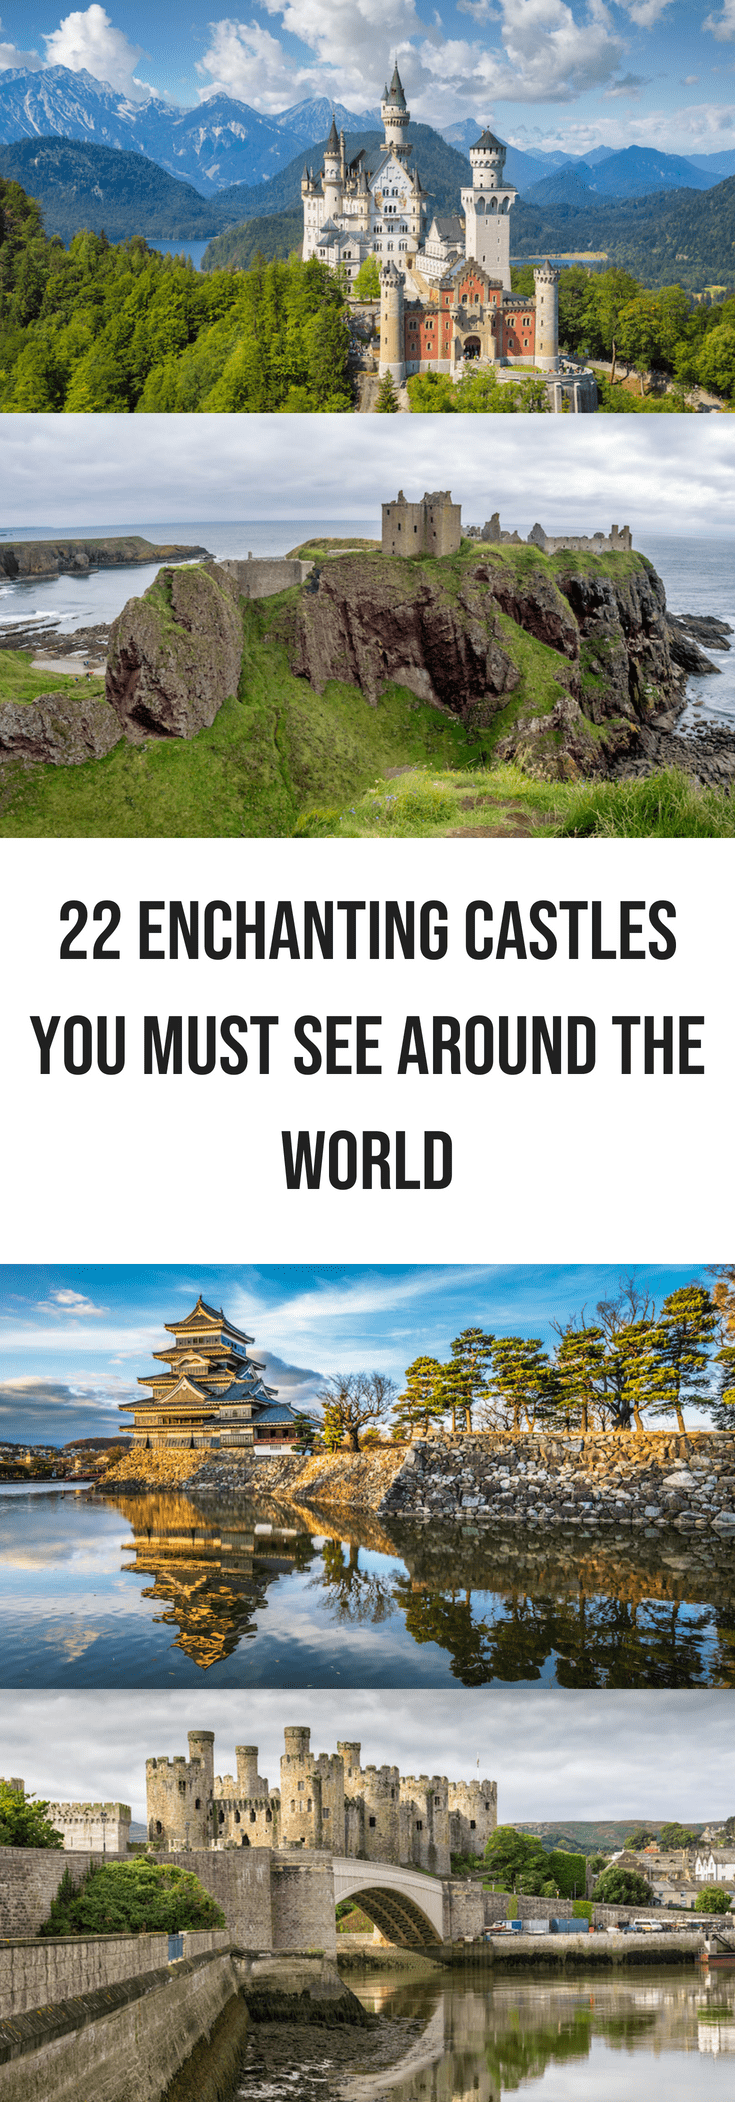 22 Enchanting Castles You Must See Around the World